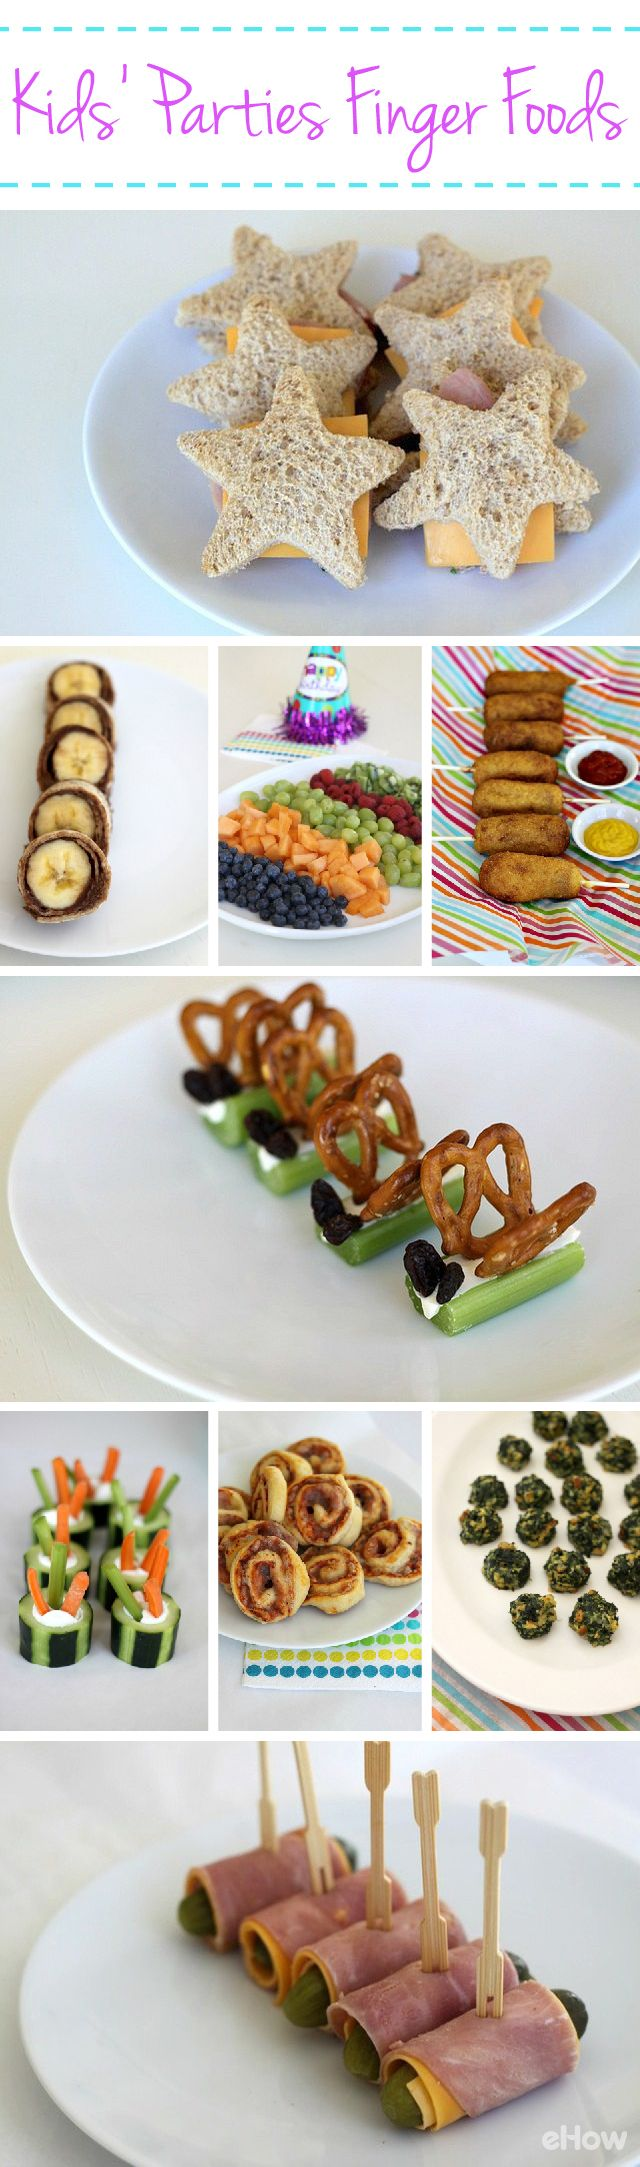 Finger Foods for Kids' Parties Wraps, Sushi and Cheese